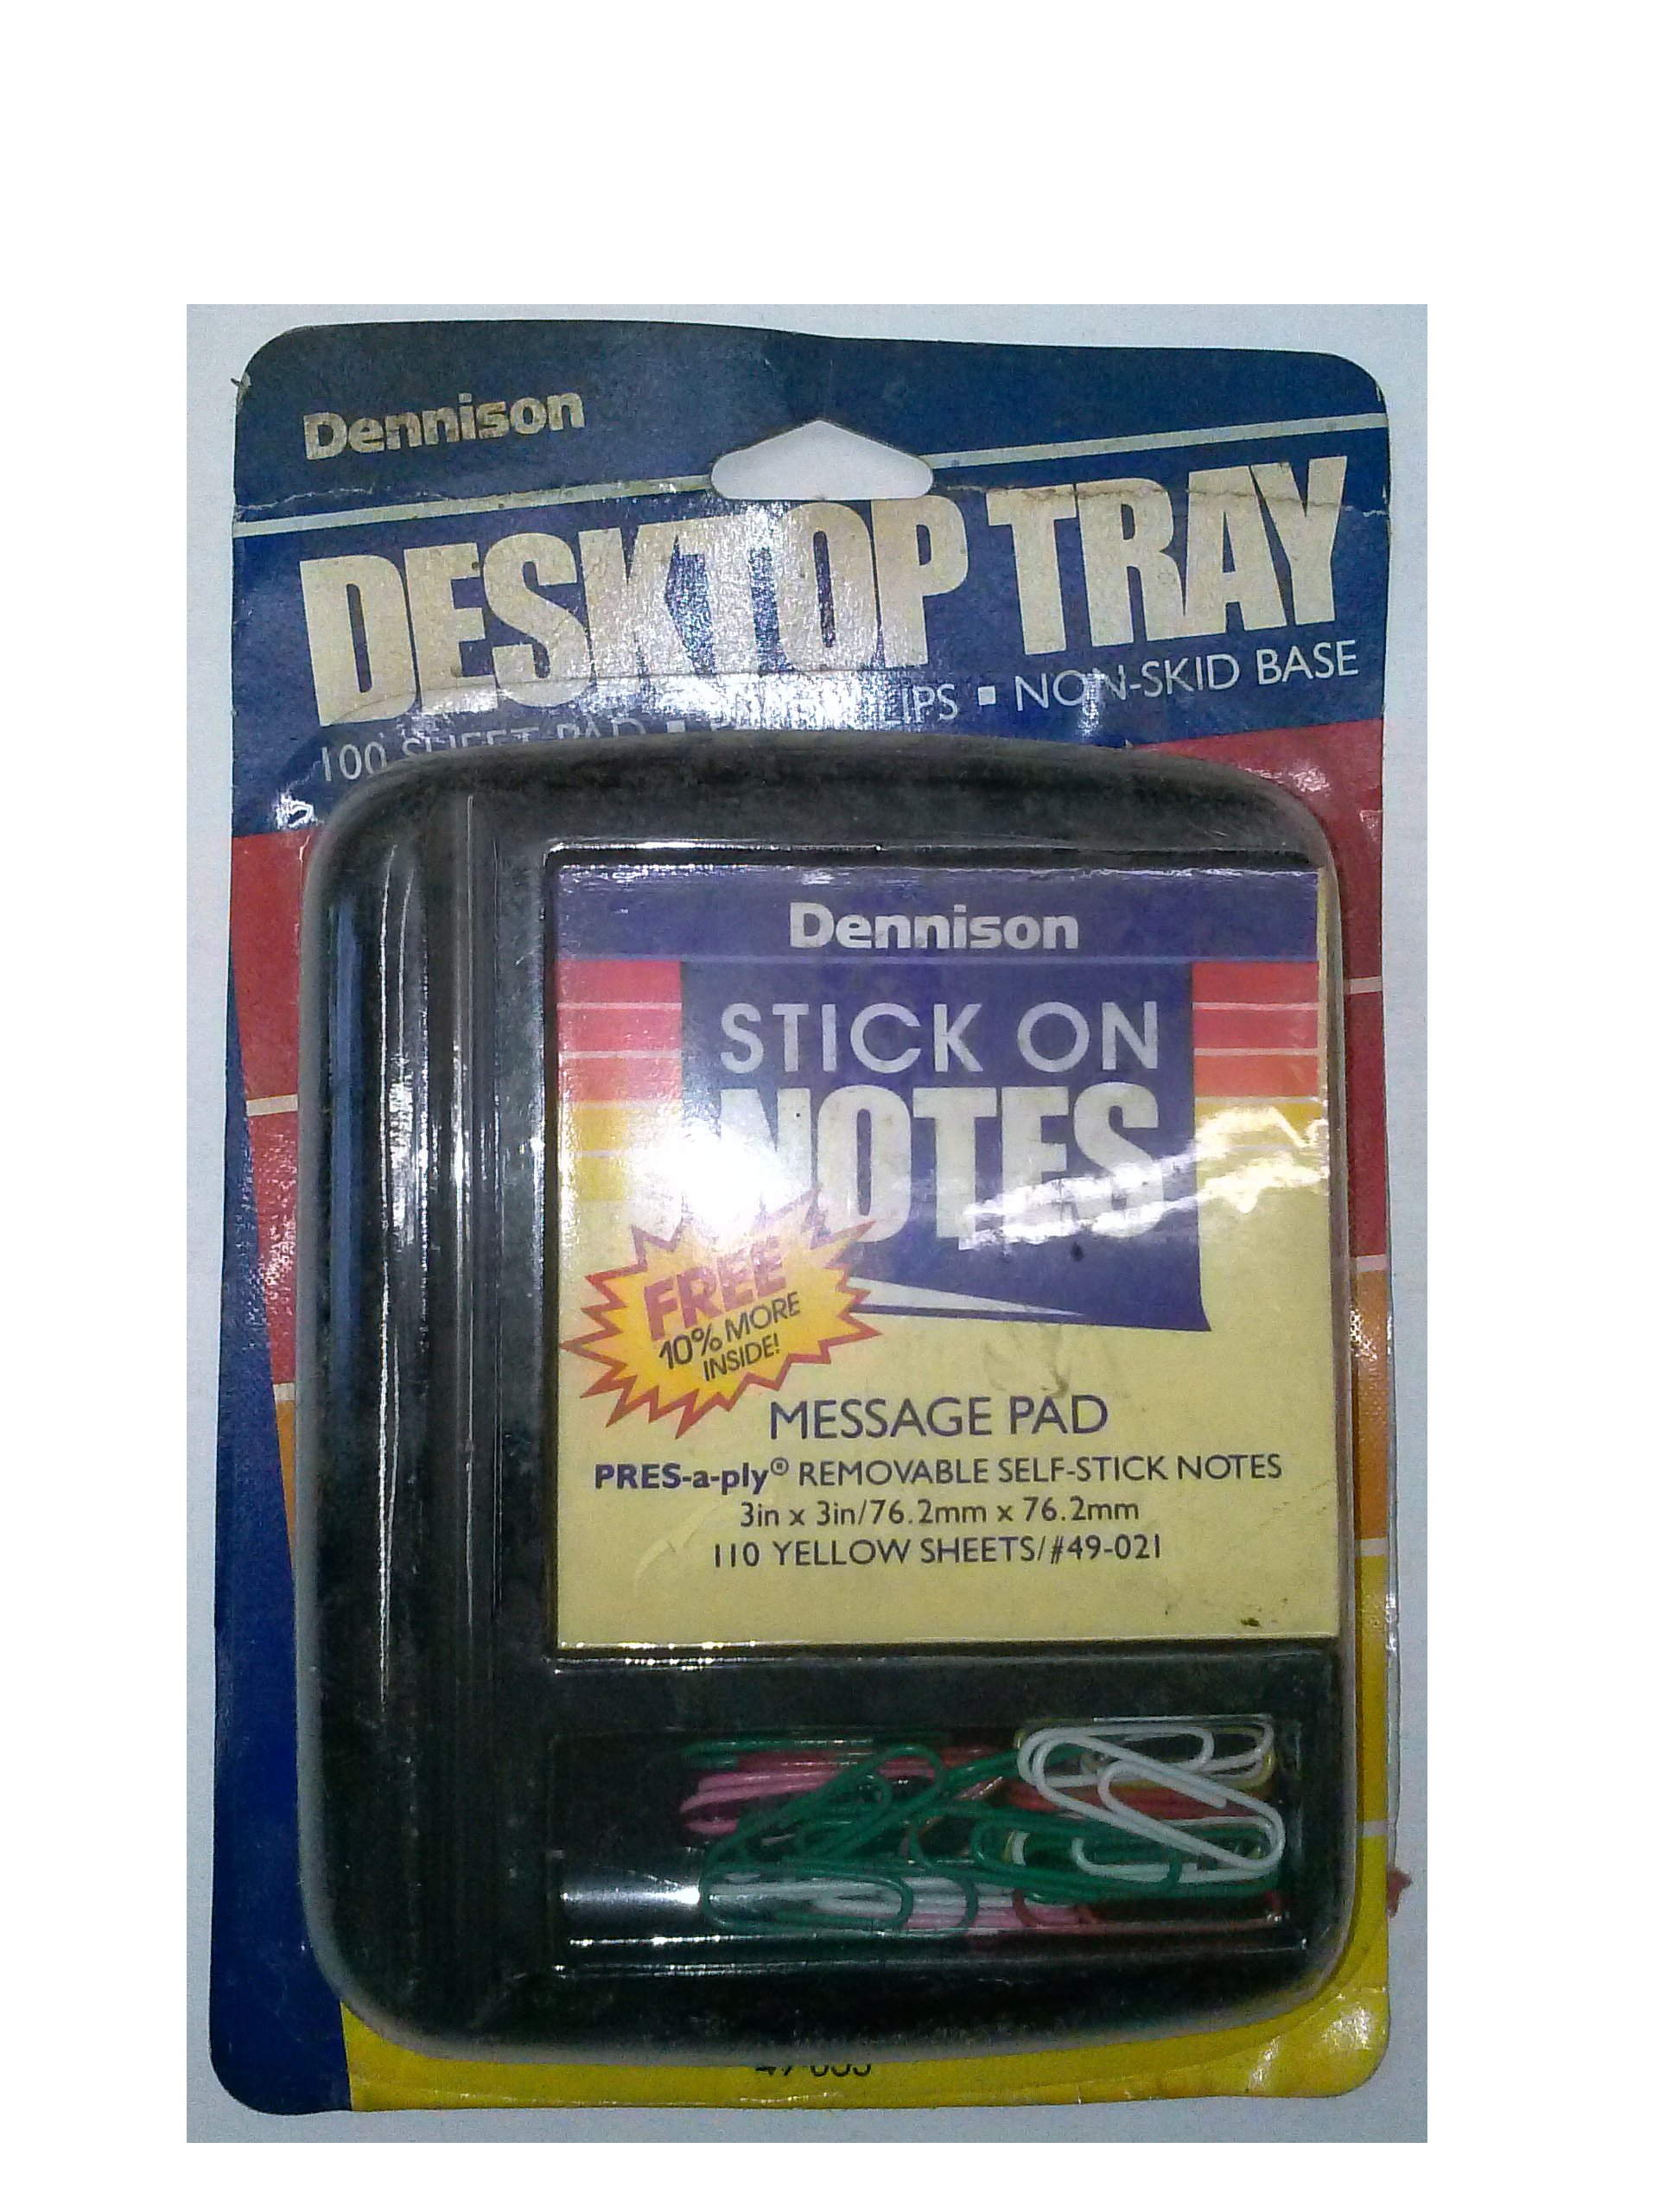 Dennison 49-053 Desktop Tray 3'' x 3'' for Post-Its & Paper Clips